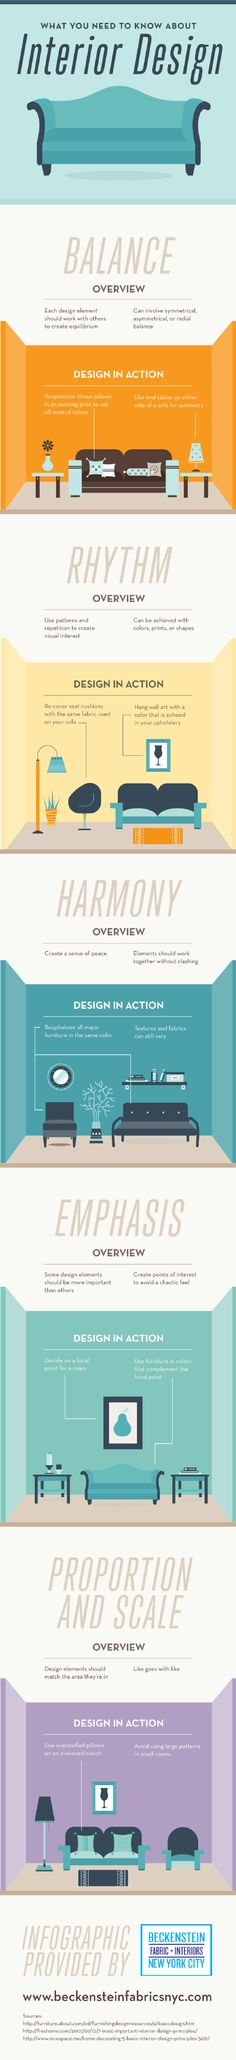 When it comes to interior design, some elements are more important than others! Homeowners should decide on a focal point for a room. http://www.archmortgage.com/content.aspx